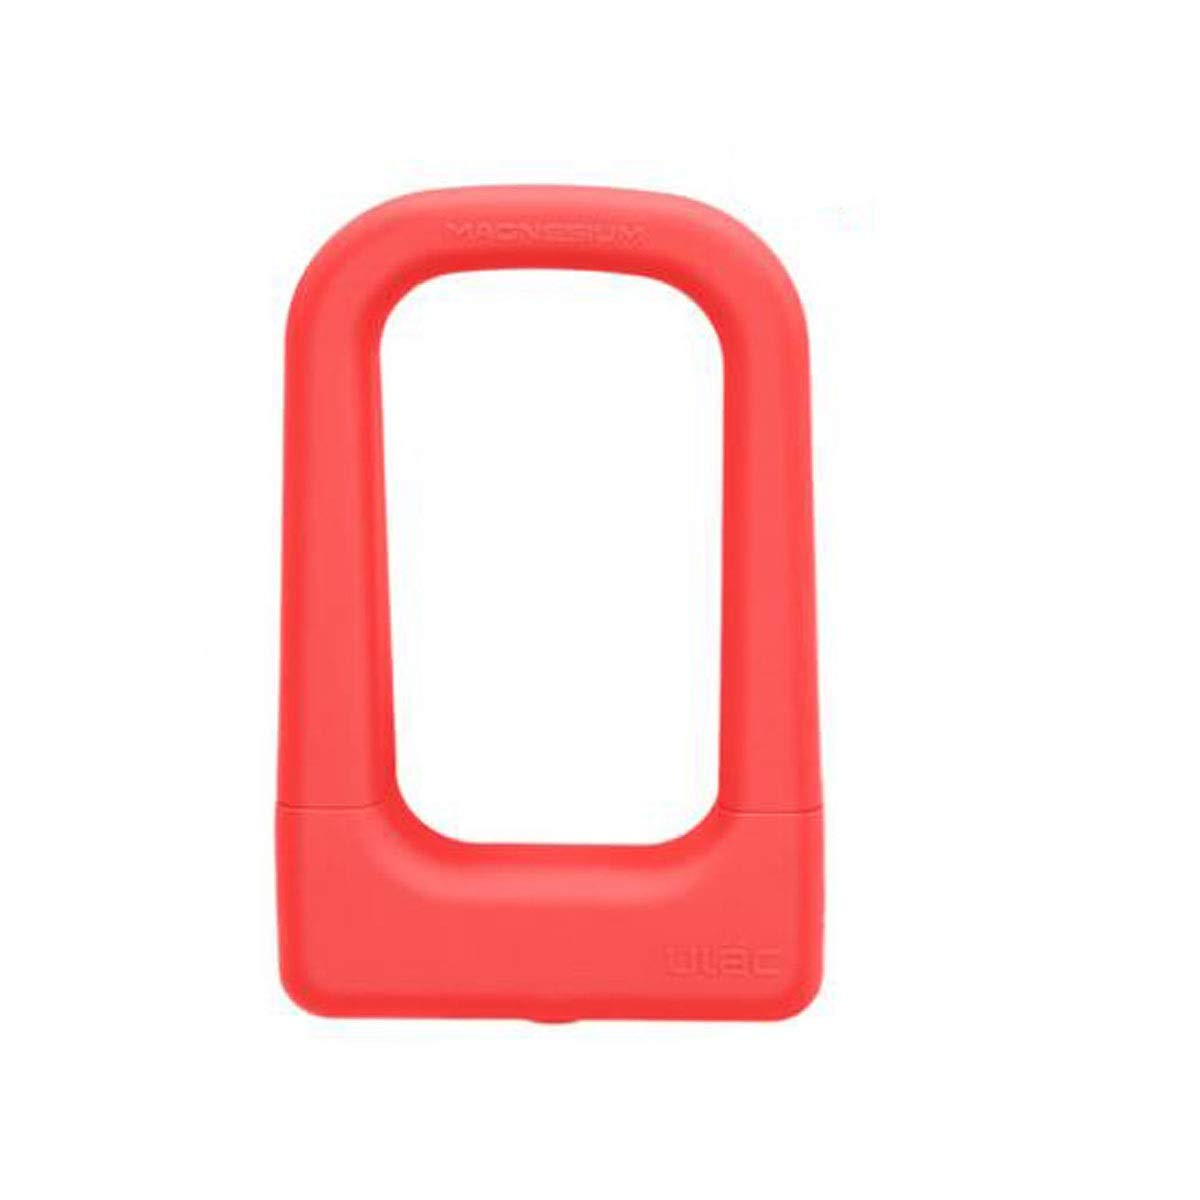 Pink Qiyuezhuangshi Sturdy and Practical ULock for Mountain Bikes, Electric Cars, Motorcycles, Size  4.8  2  8 Inches, color  Black, blueee, orange Environmental Predection